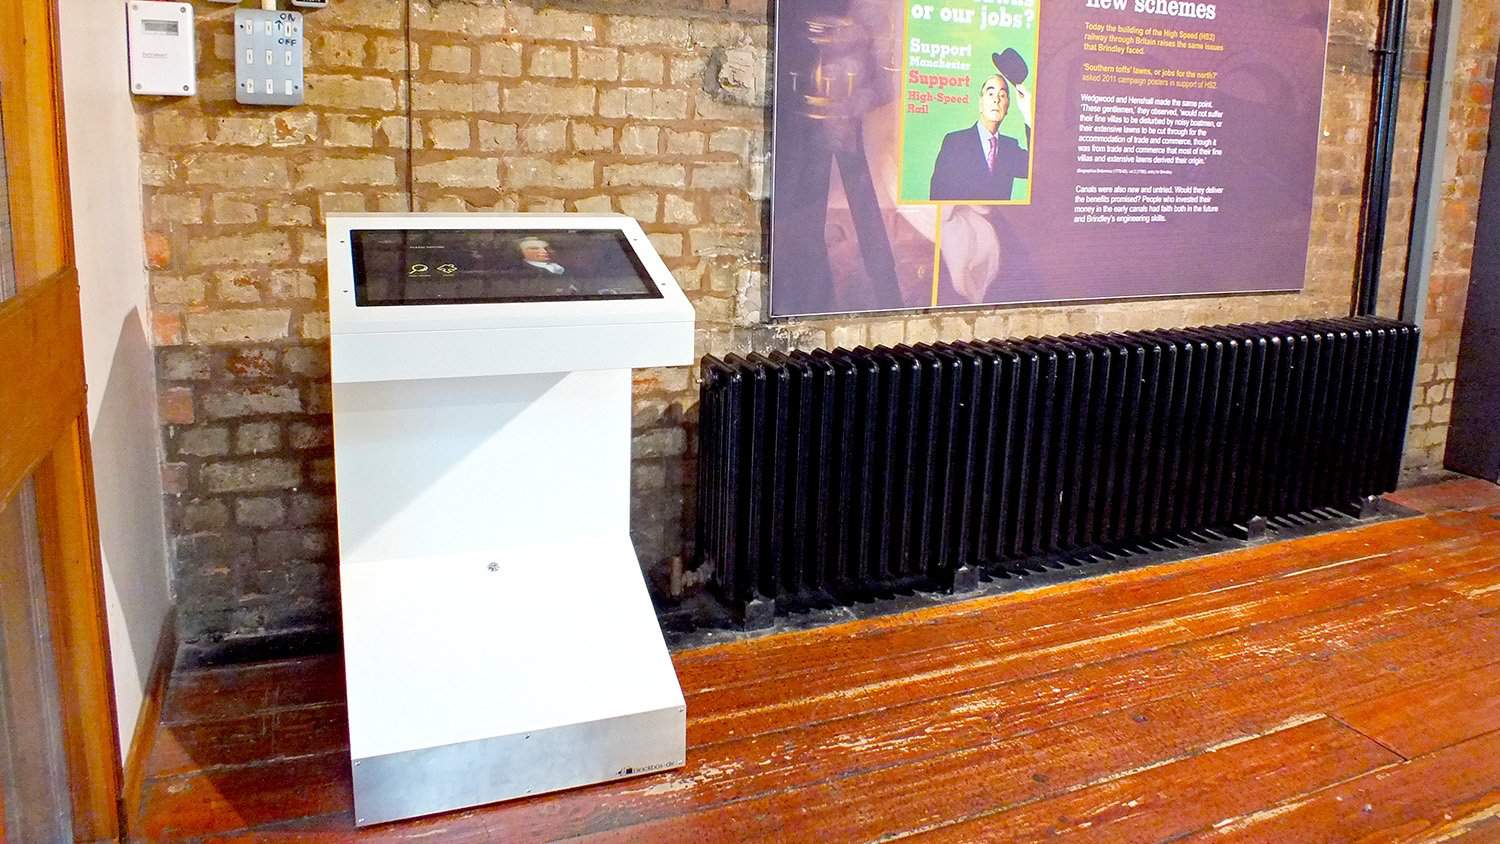 Free Standing Brindley 300 Kiosk with Parallax Homepage from Blackbox-av